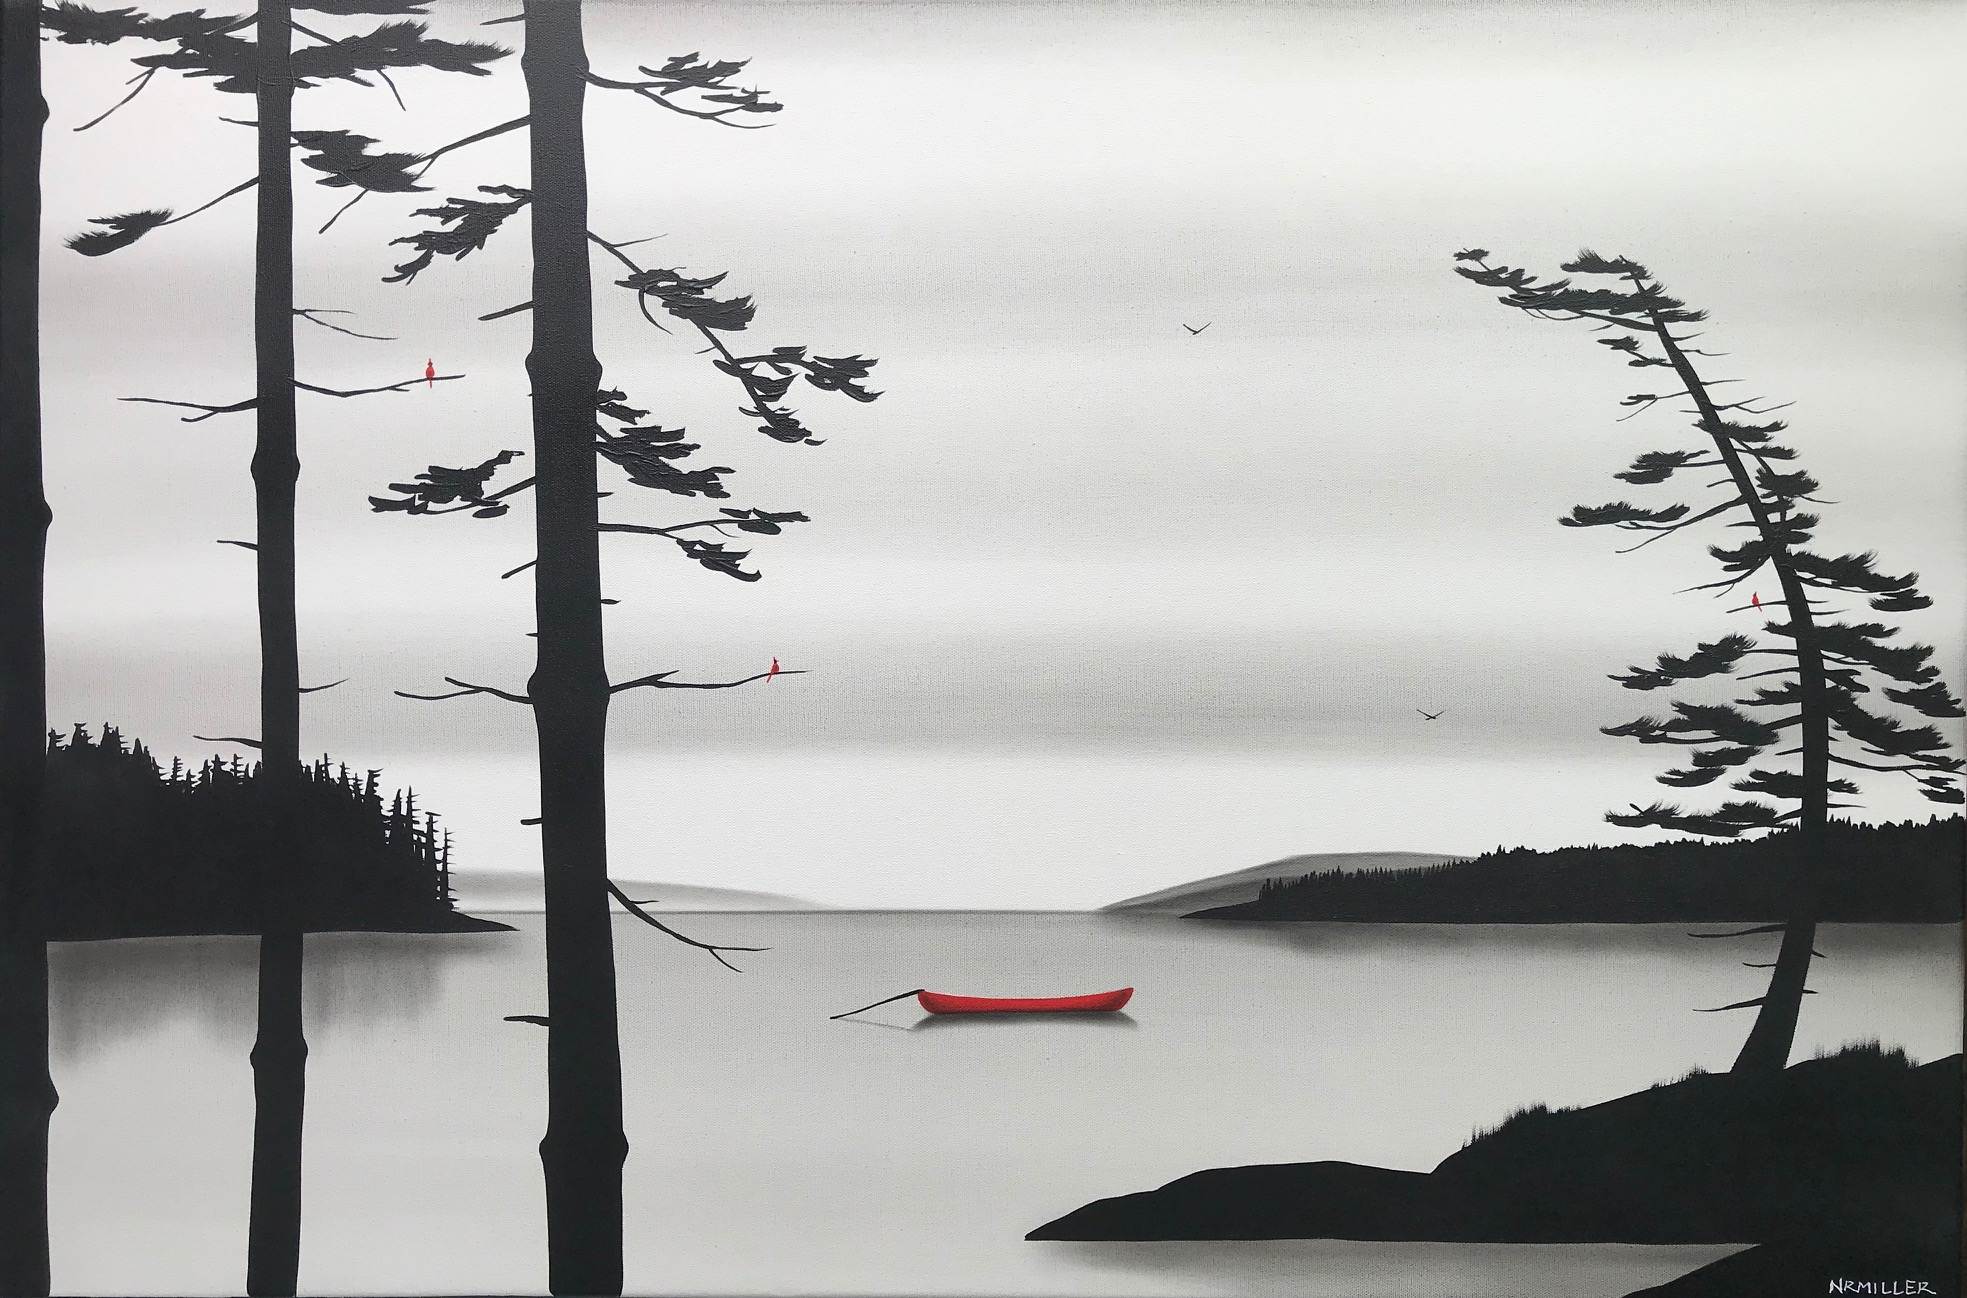 A Cool, Still Morning, mixed media Canadian landscape painting by Natasha Miller | Effusion Art Gallery + Glass Studio, Invermere BC